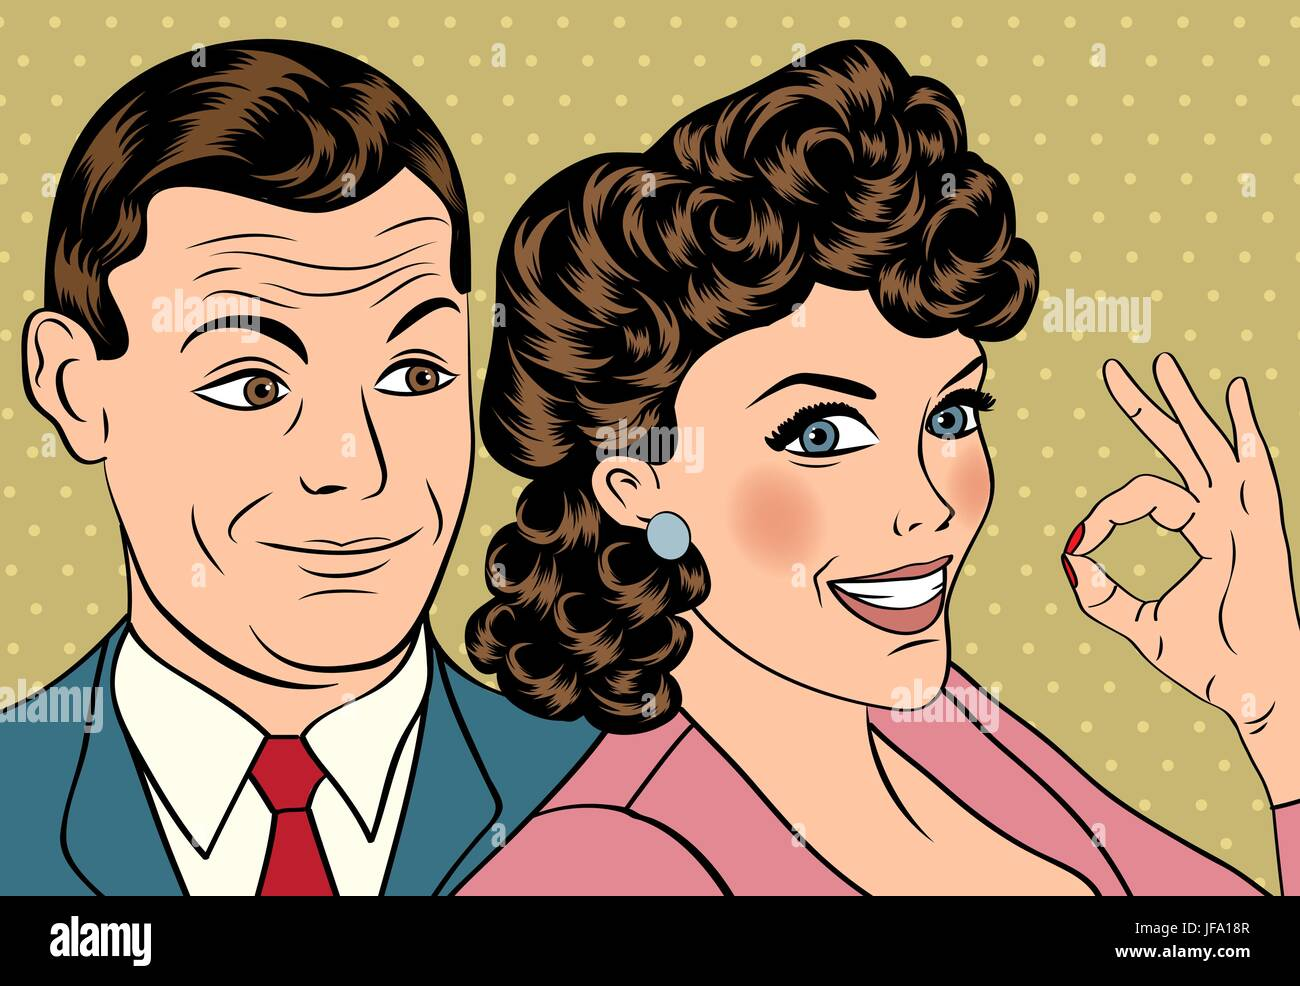 Man and woman love couple in pop art comic style - Stock Vector